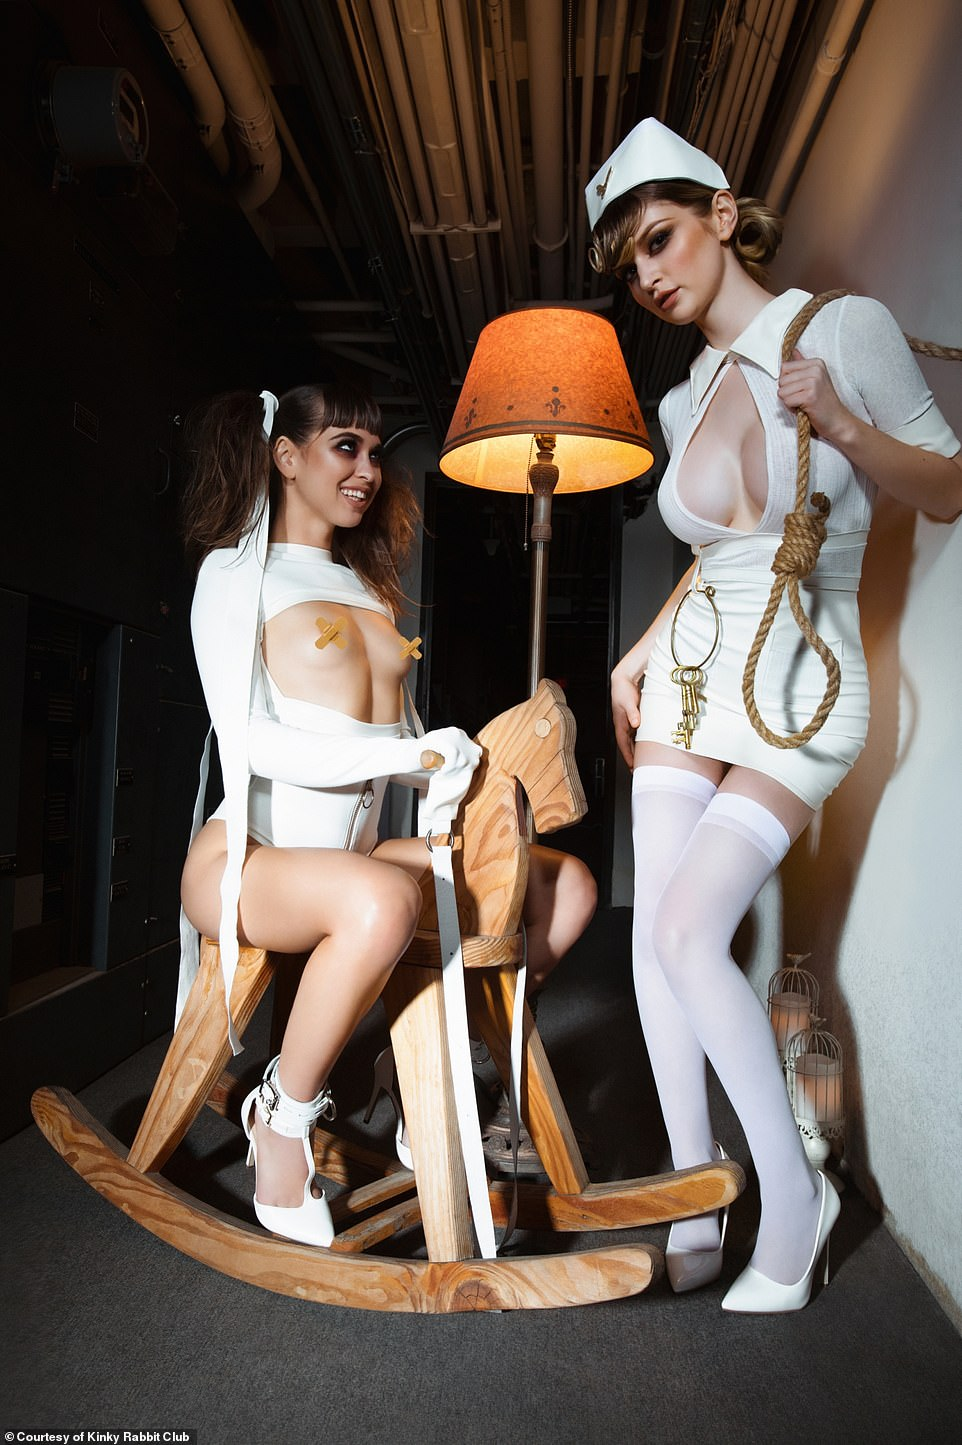 Some of the parties have a 'darker vibe', Alina says, including this asylum-themed party. But she says despite the dark feel, 'you step in and feel amazing'